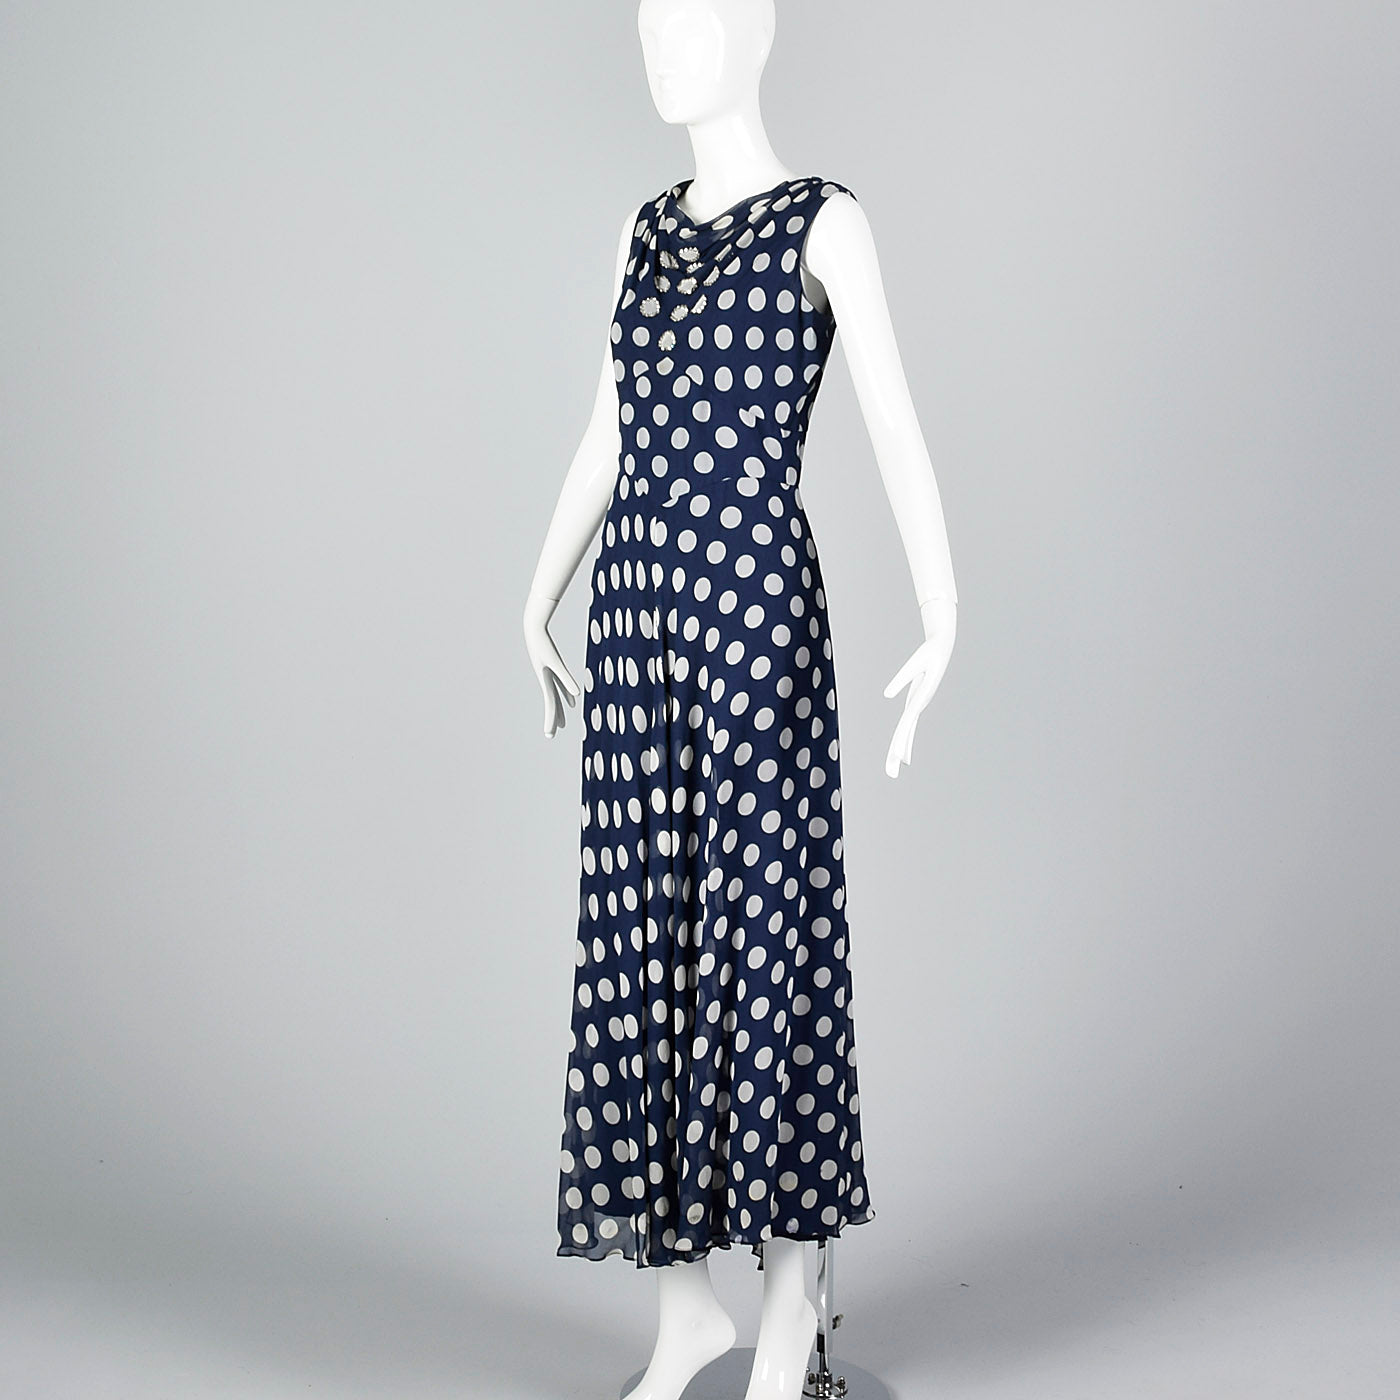 1970s Navy Dress with White Polka Dots